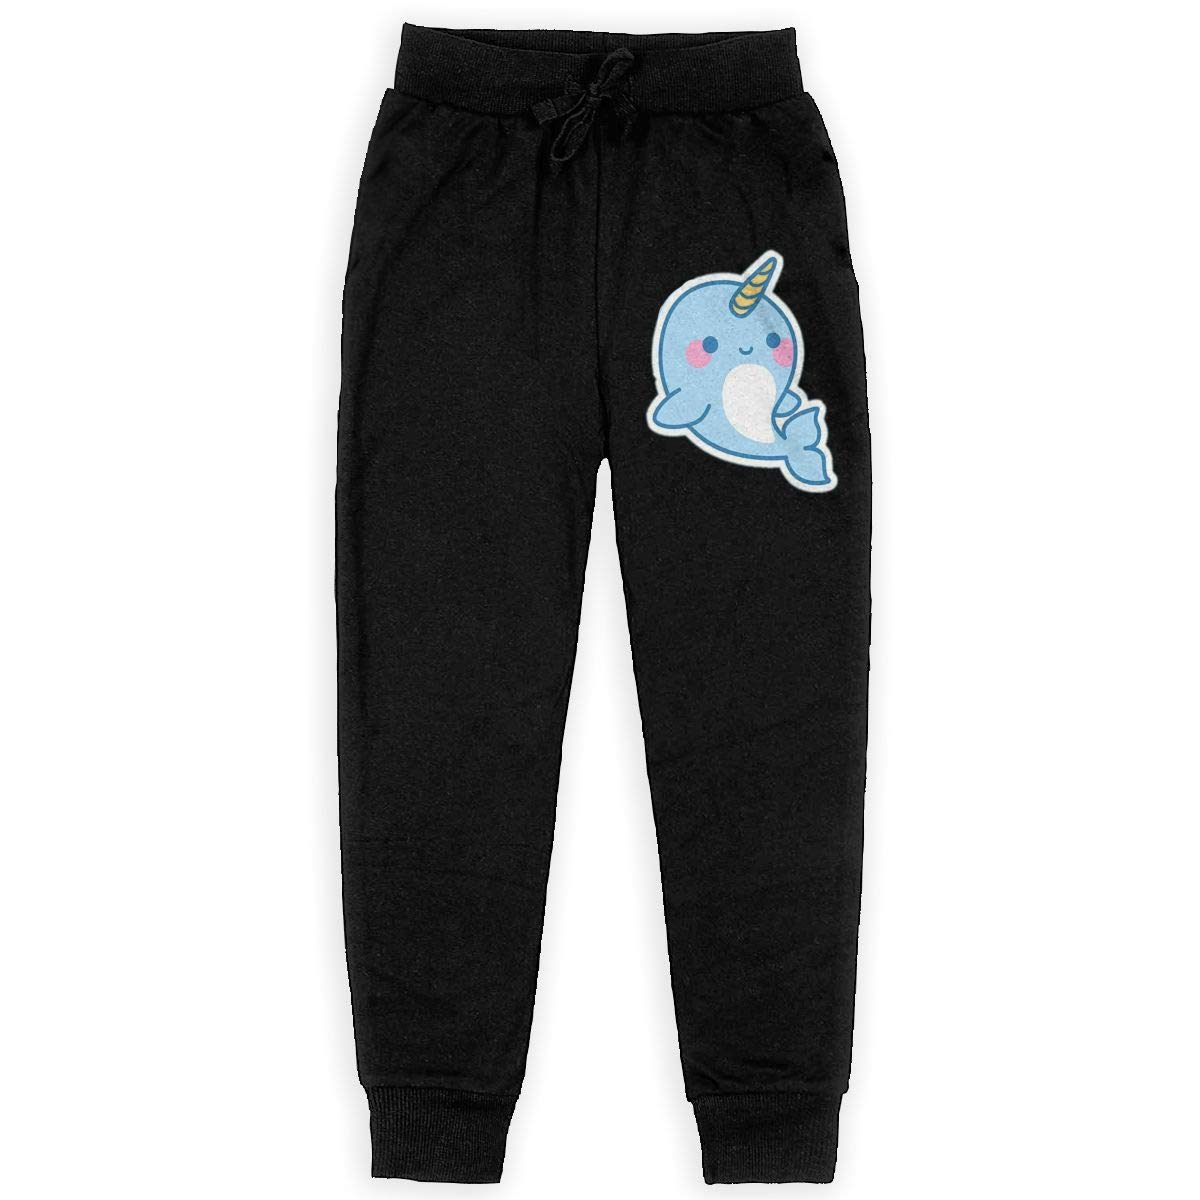 Qinf Boys Sweatpants Little Blue Narwhal Joggers Sport Training Pants Trousers Cotton Sweatpants for Youth